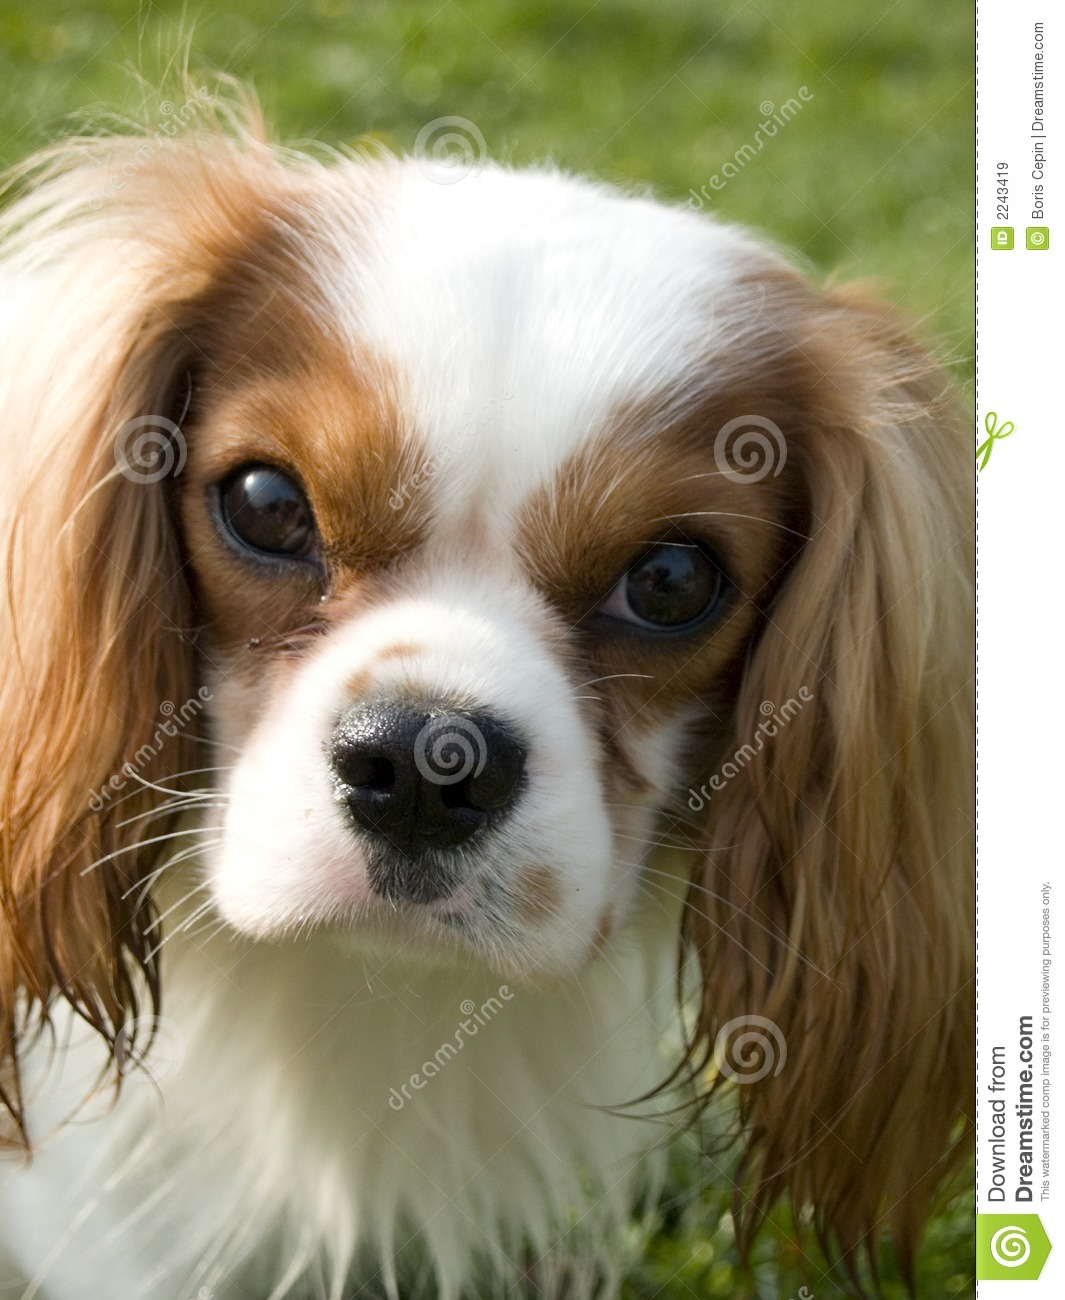 Brown And White Dog Cute brown and white dog